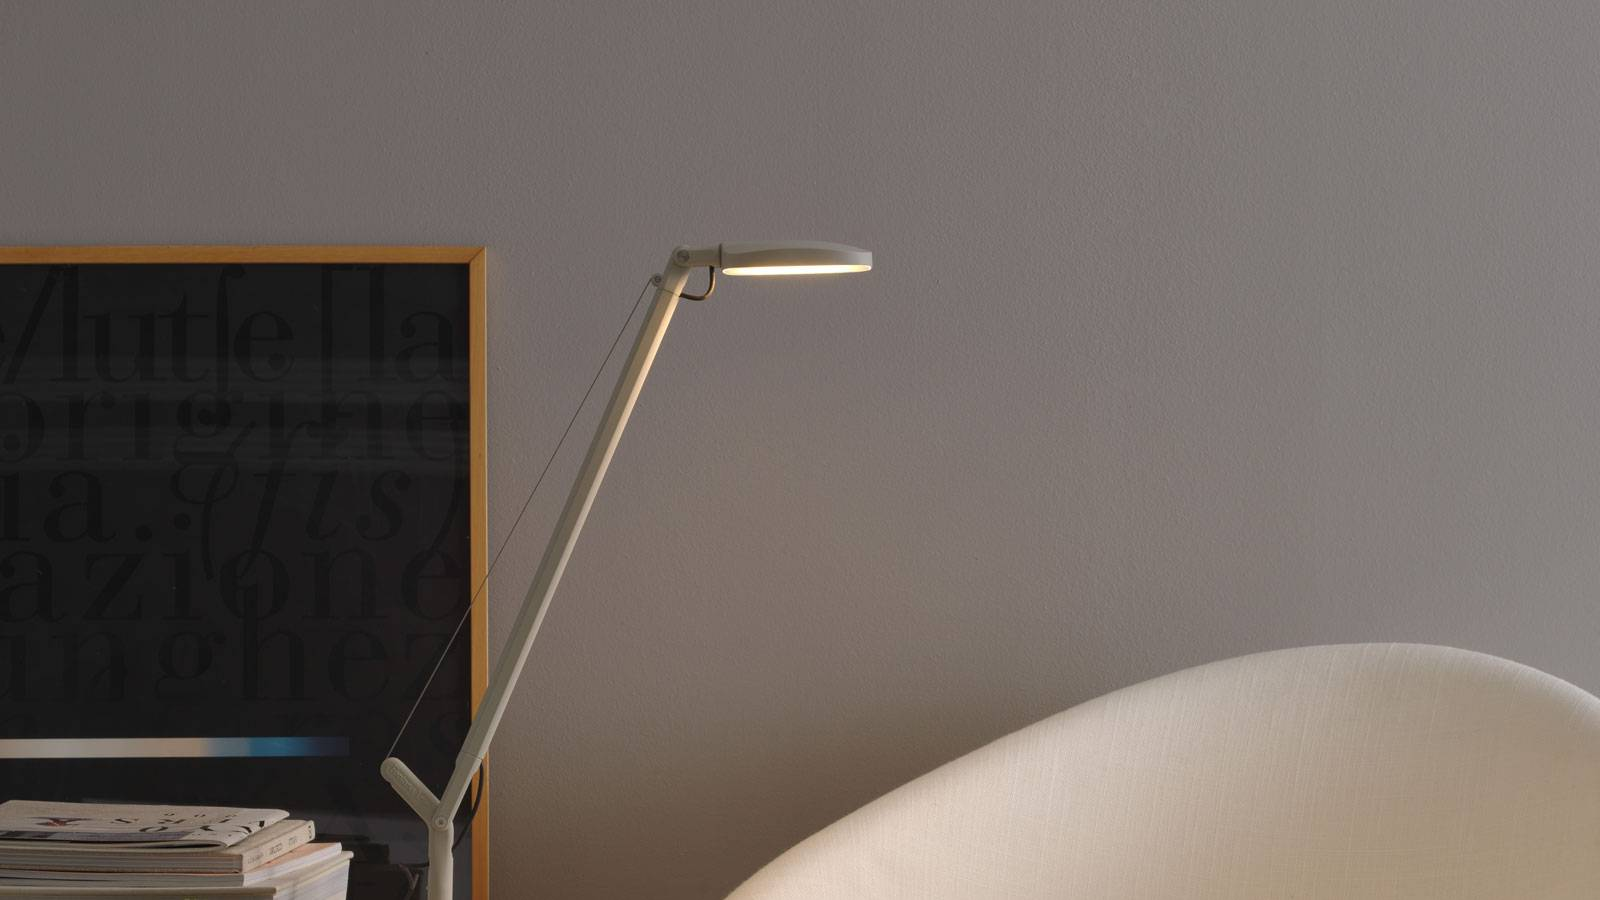 contemporary design lamp by Odo Fioravanti for Fontana Arte